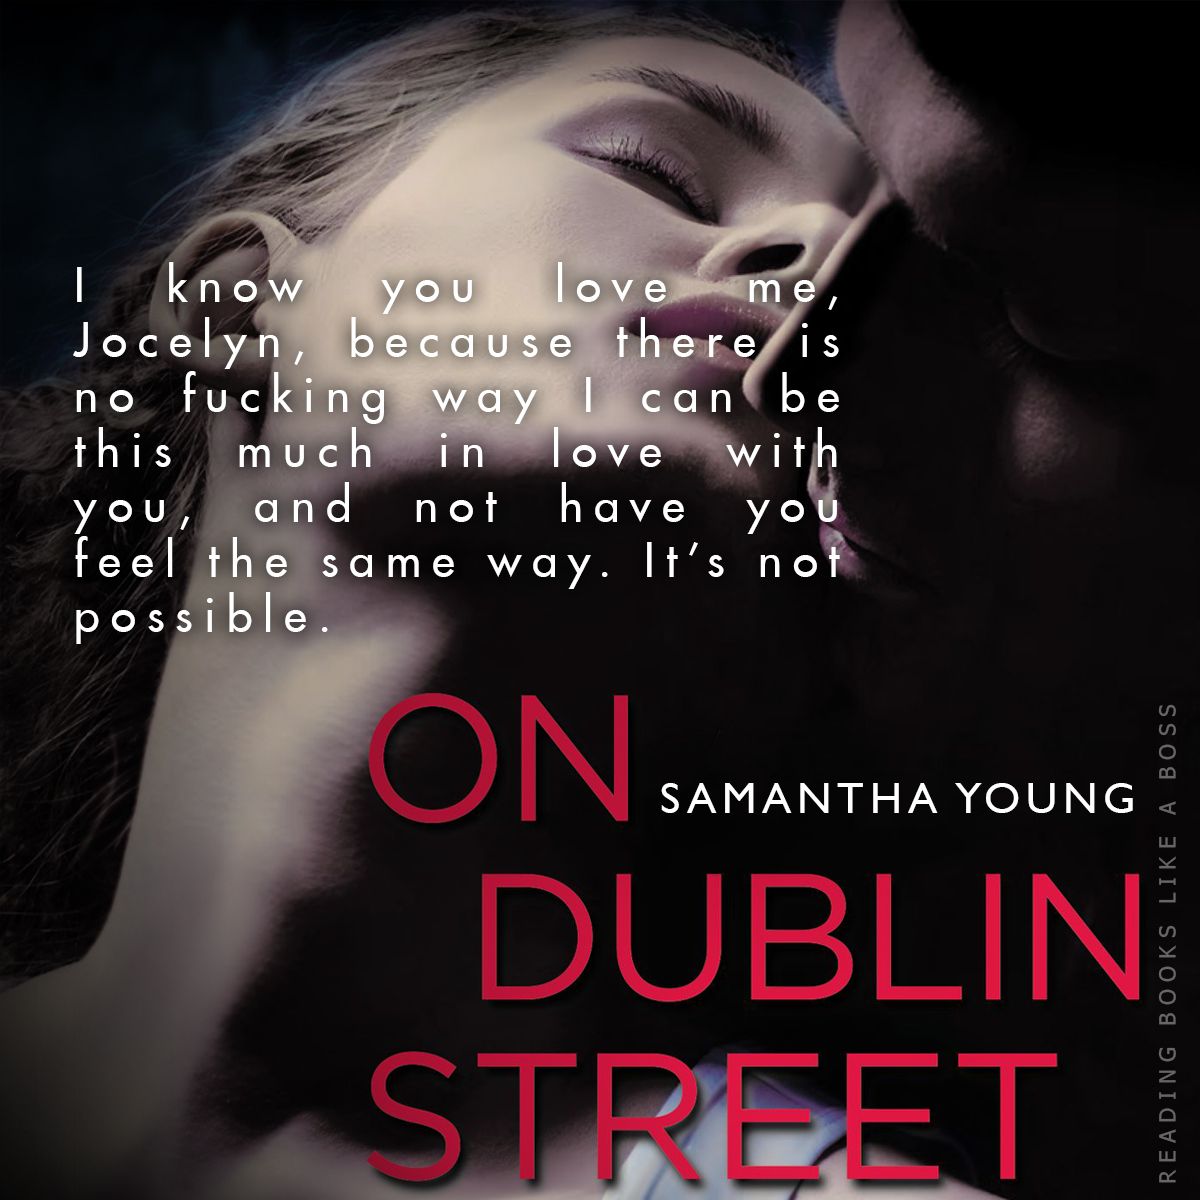 On Dublin Street by Samantha Young I know you love me, Jocelyn